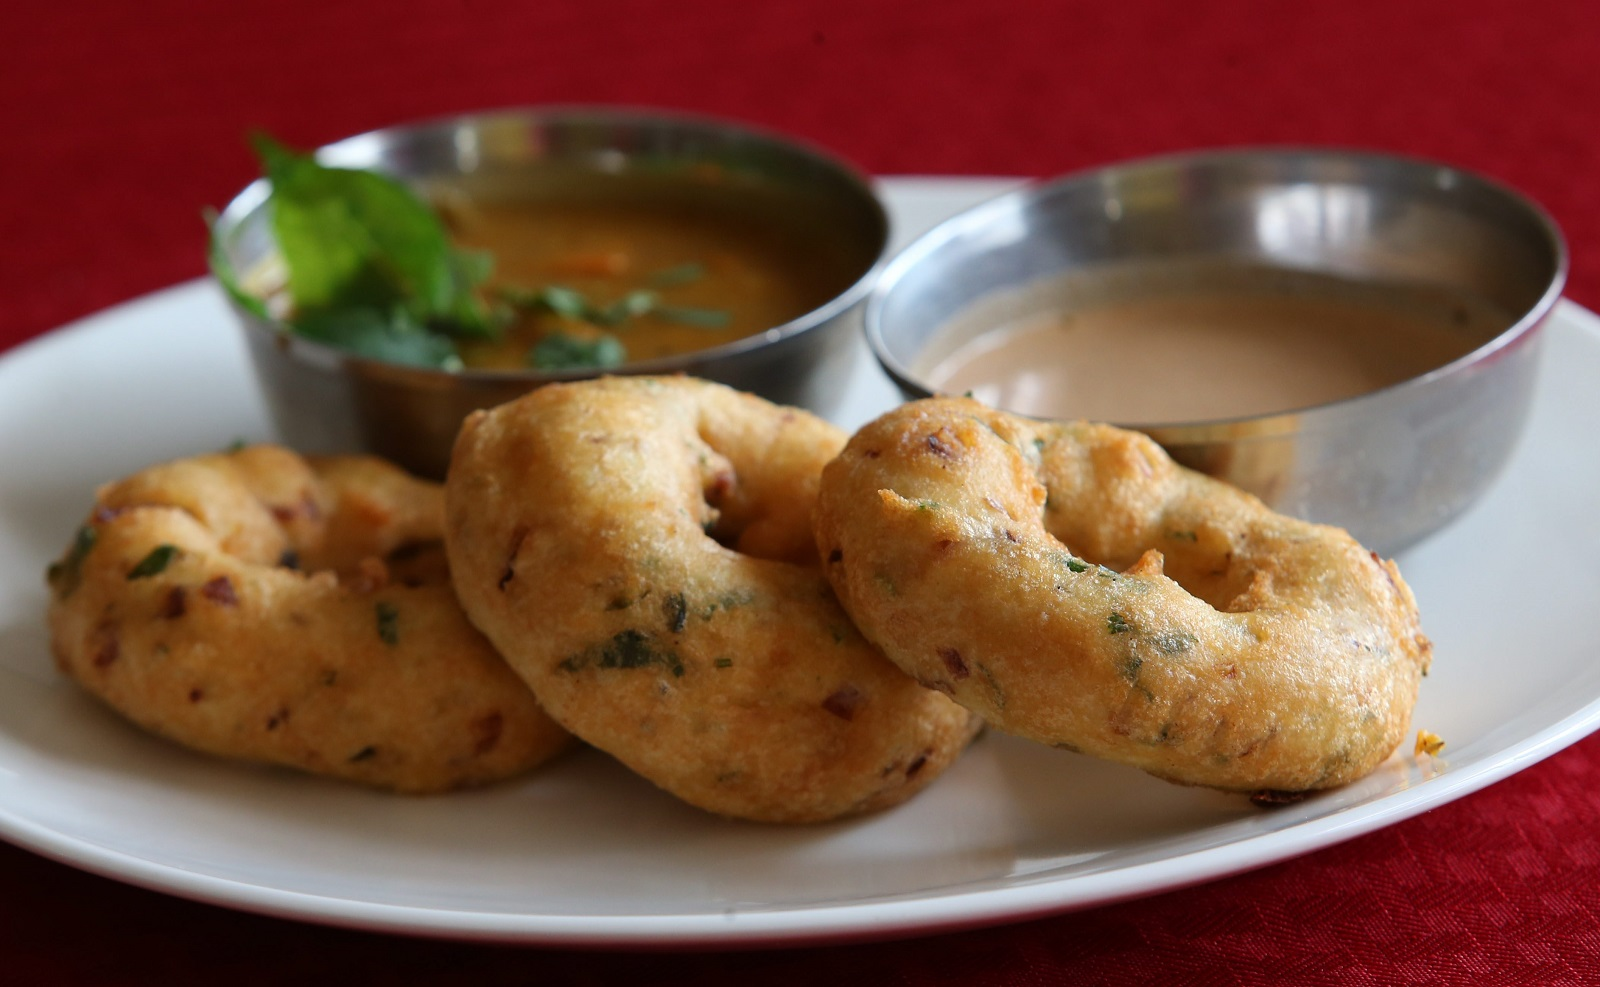 Hyderabad Biryani House's vada is a savory doughnut, made out of lentil batter and served with fresh coconut chutney and sambar. (Sharon Cantillon/Buffalo News)